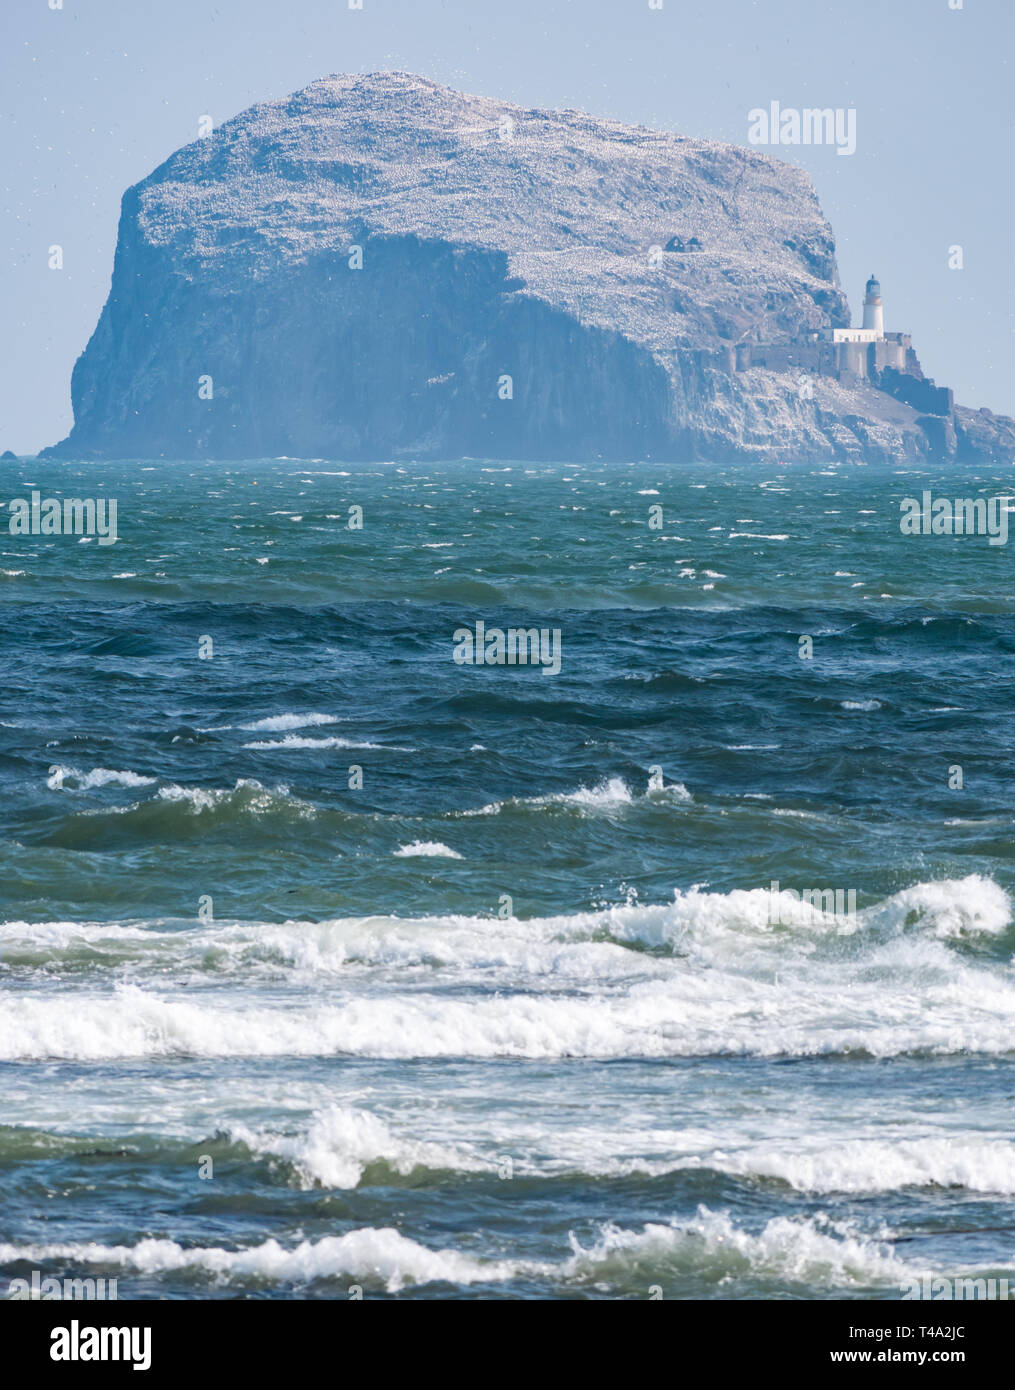 North Berwick, East Lothian, Scotland, United Kingdom, 15th April 2019. UK Weather: a very cold windy day in the seaside town. View from Milsey Bay with the Bass Rock gannet colony, the largest Northern gannet colony, in the distance. The gannets have returned and are beginning to build their nests - Stock Image